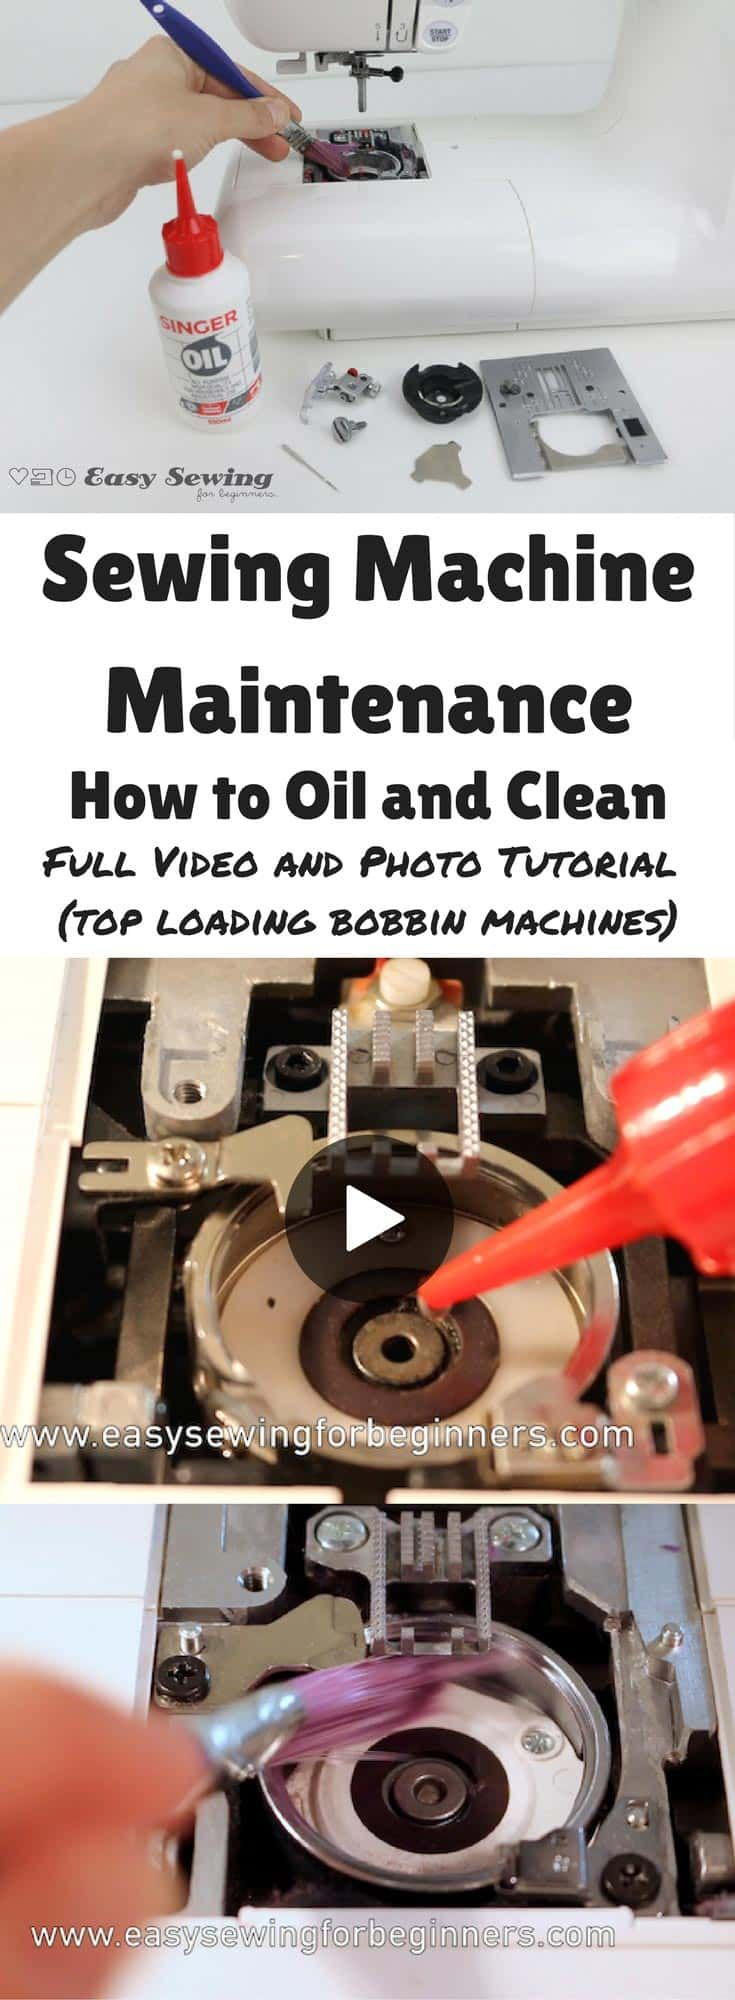 Sewing Machine Maintenance How to Oil and Clean Top Loading Bobbin sewing machines!